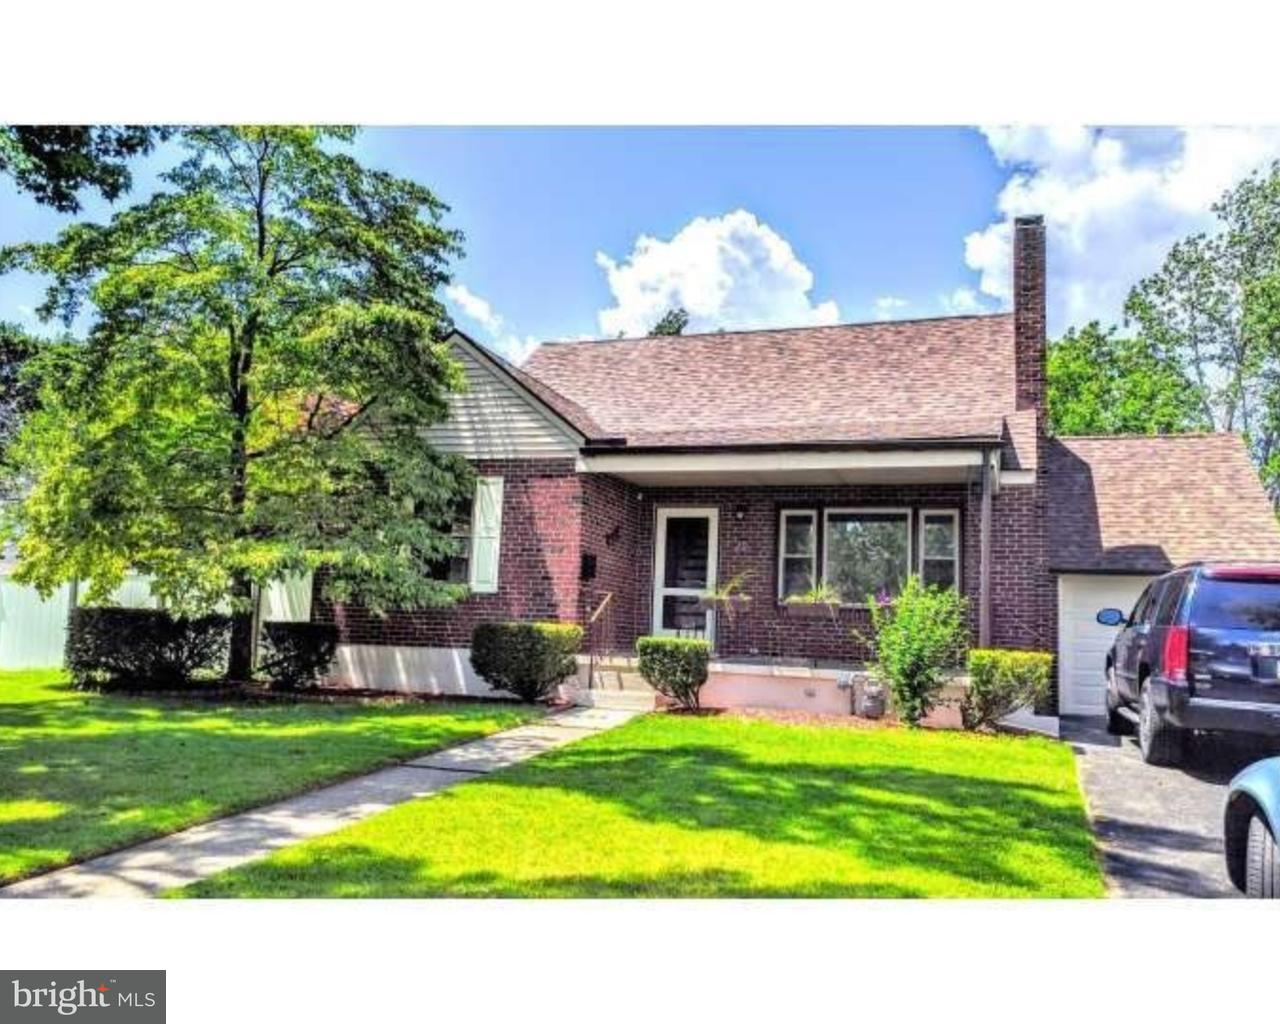 22 VALLEY RD, WYOMISSING - Listed at $224,900, WYOMISSING